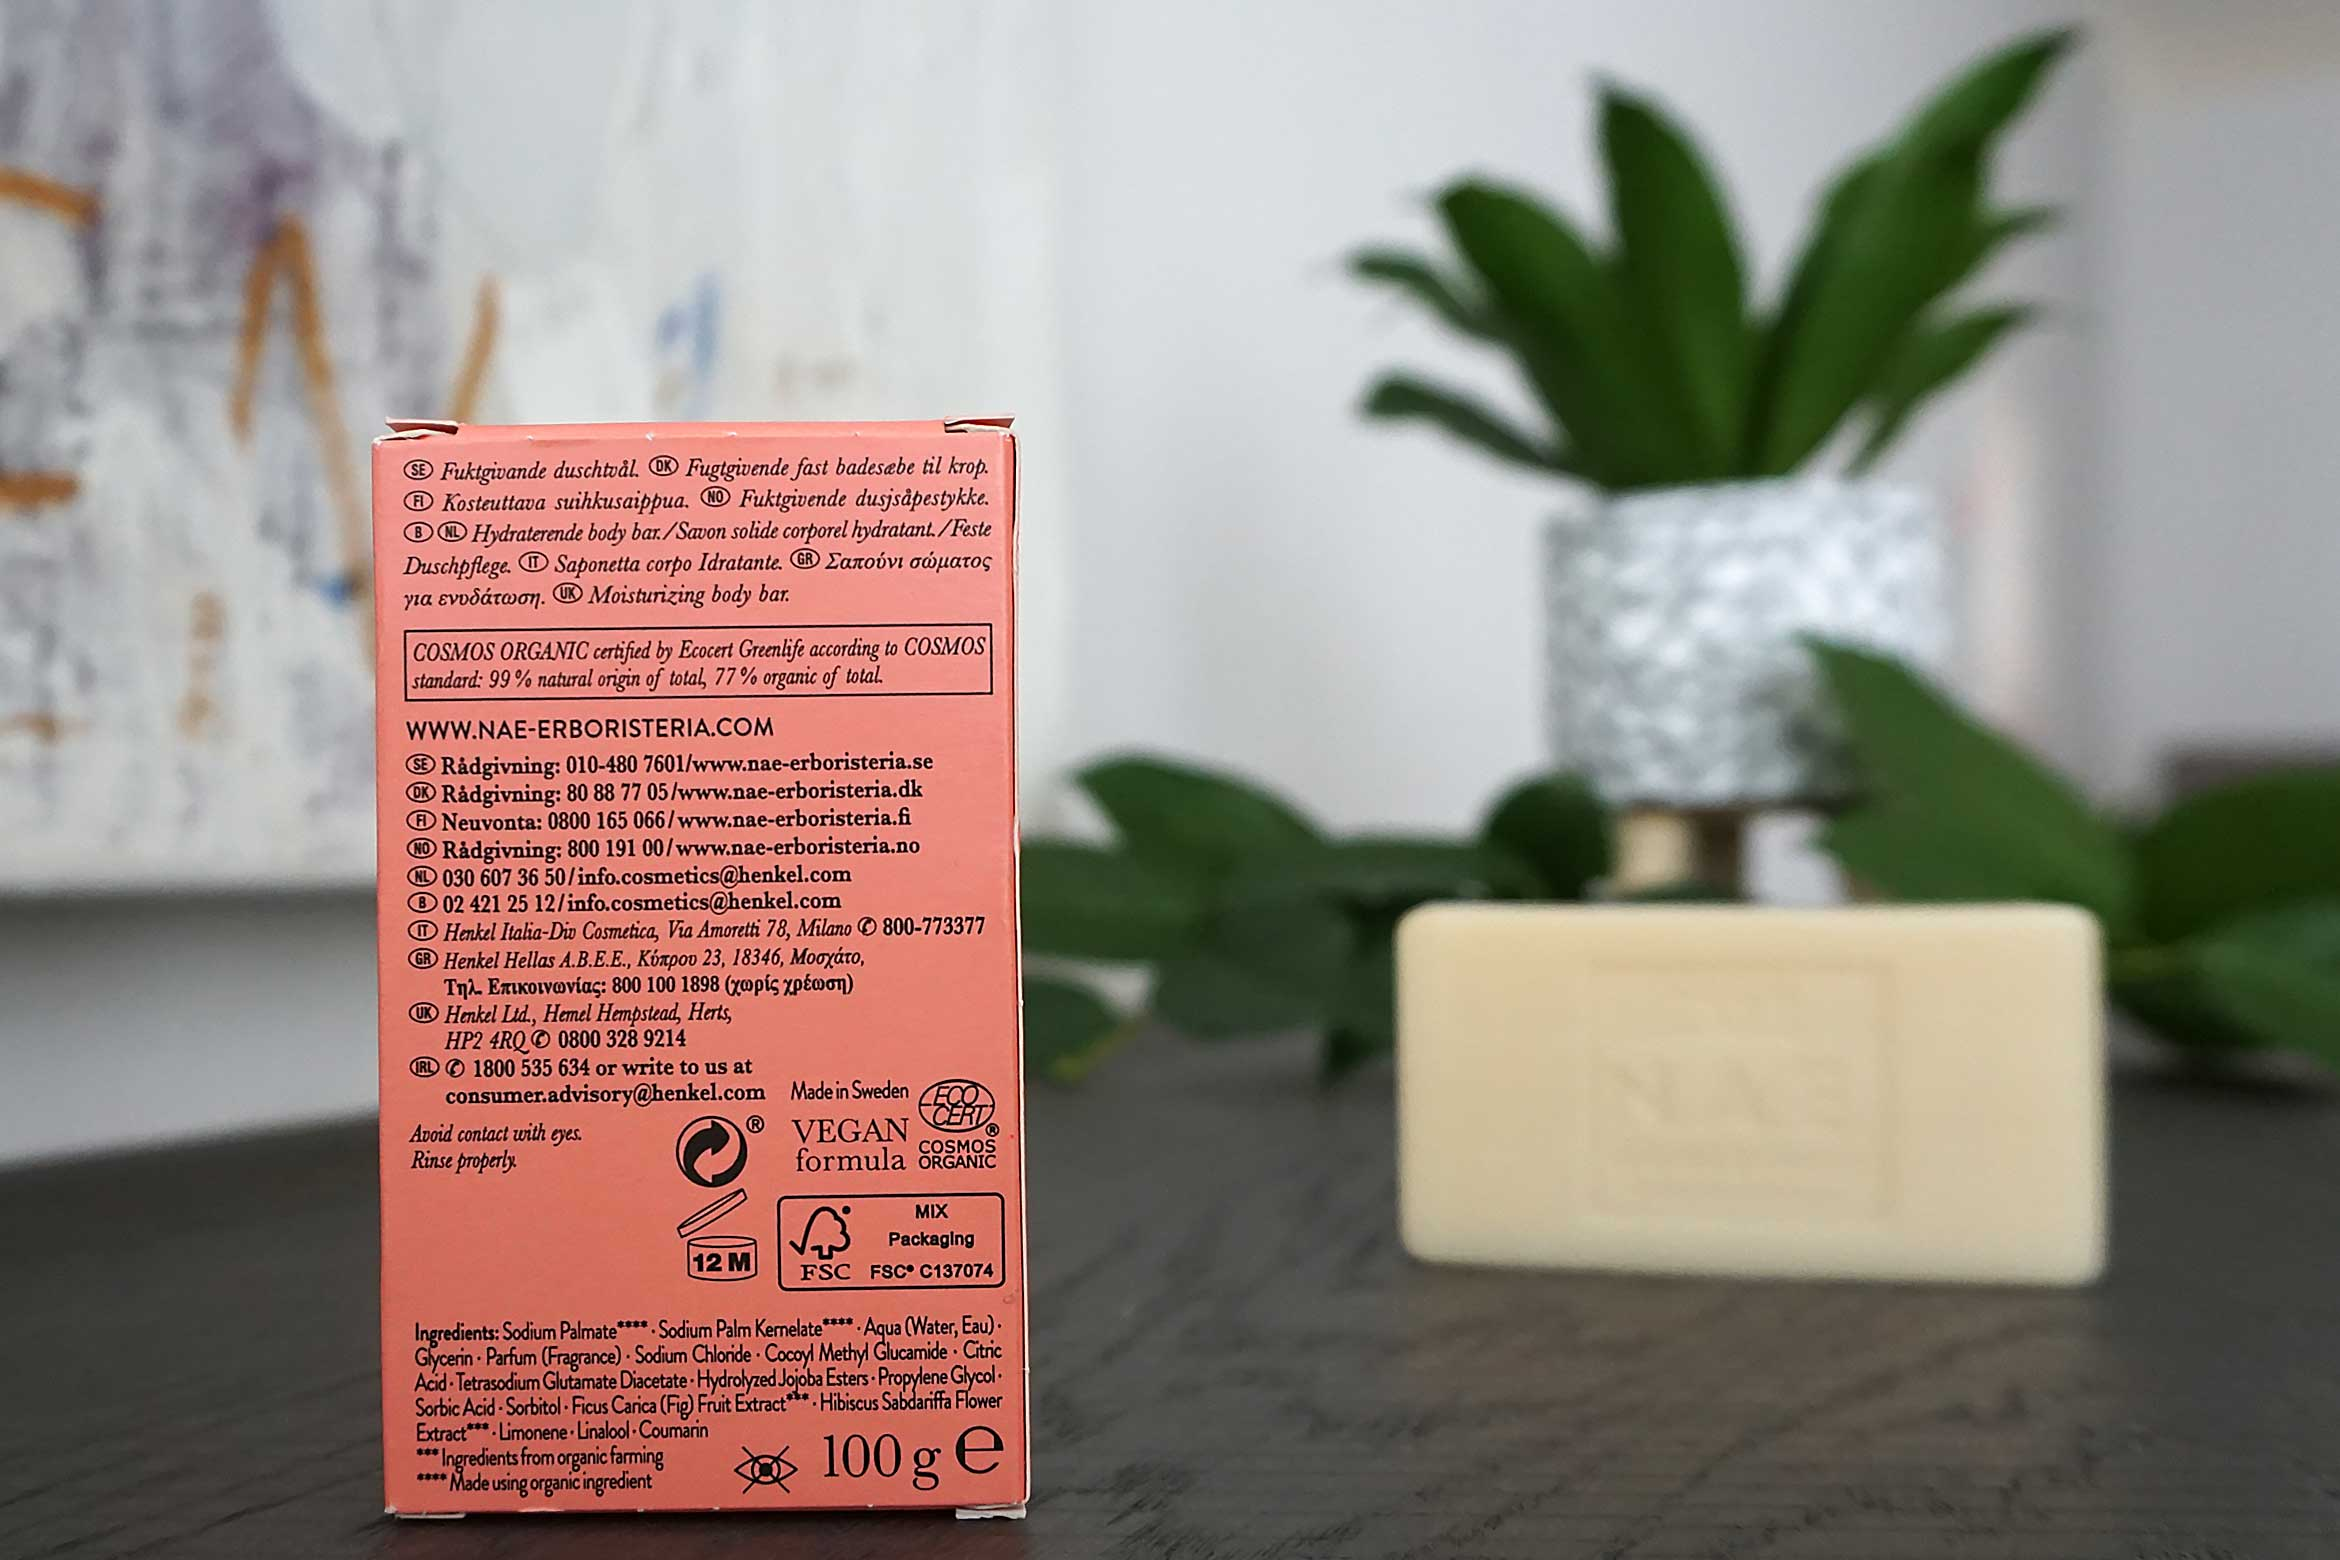 n.a.e. idratazione moisturizing body bar review-2